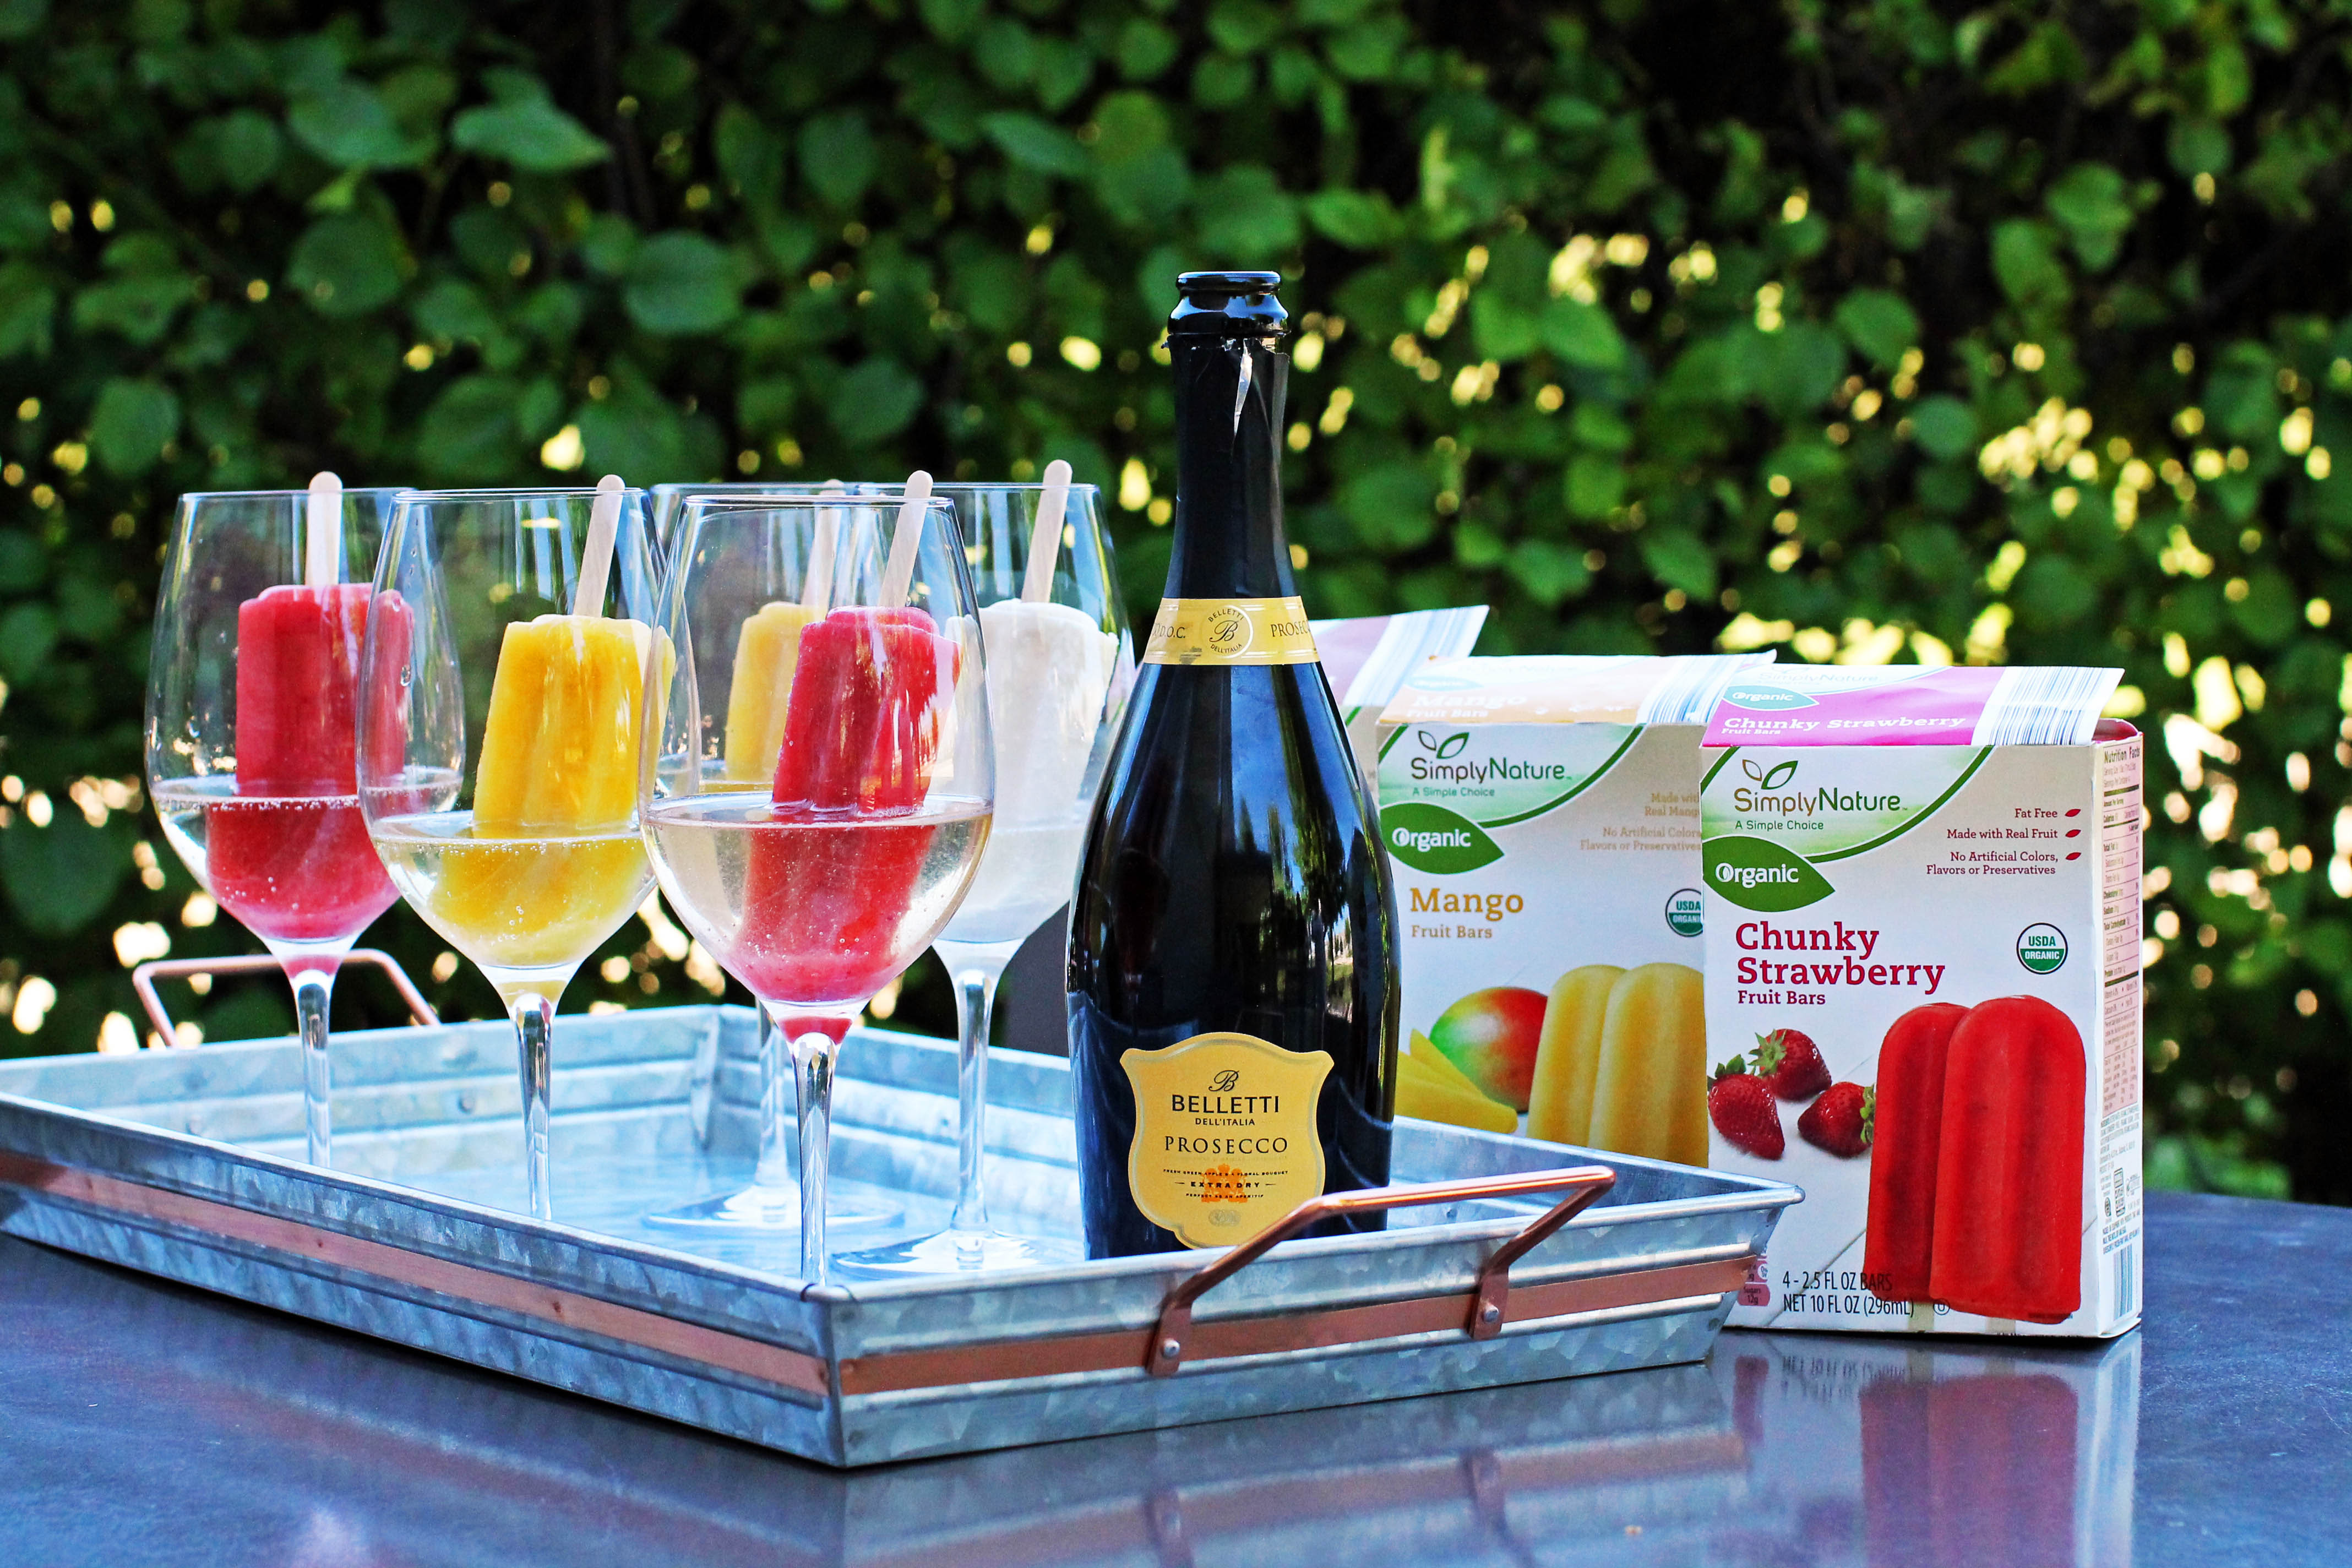 Organic fruit bars paired with Belletti Prosecco.